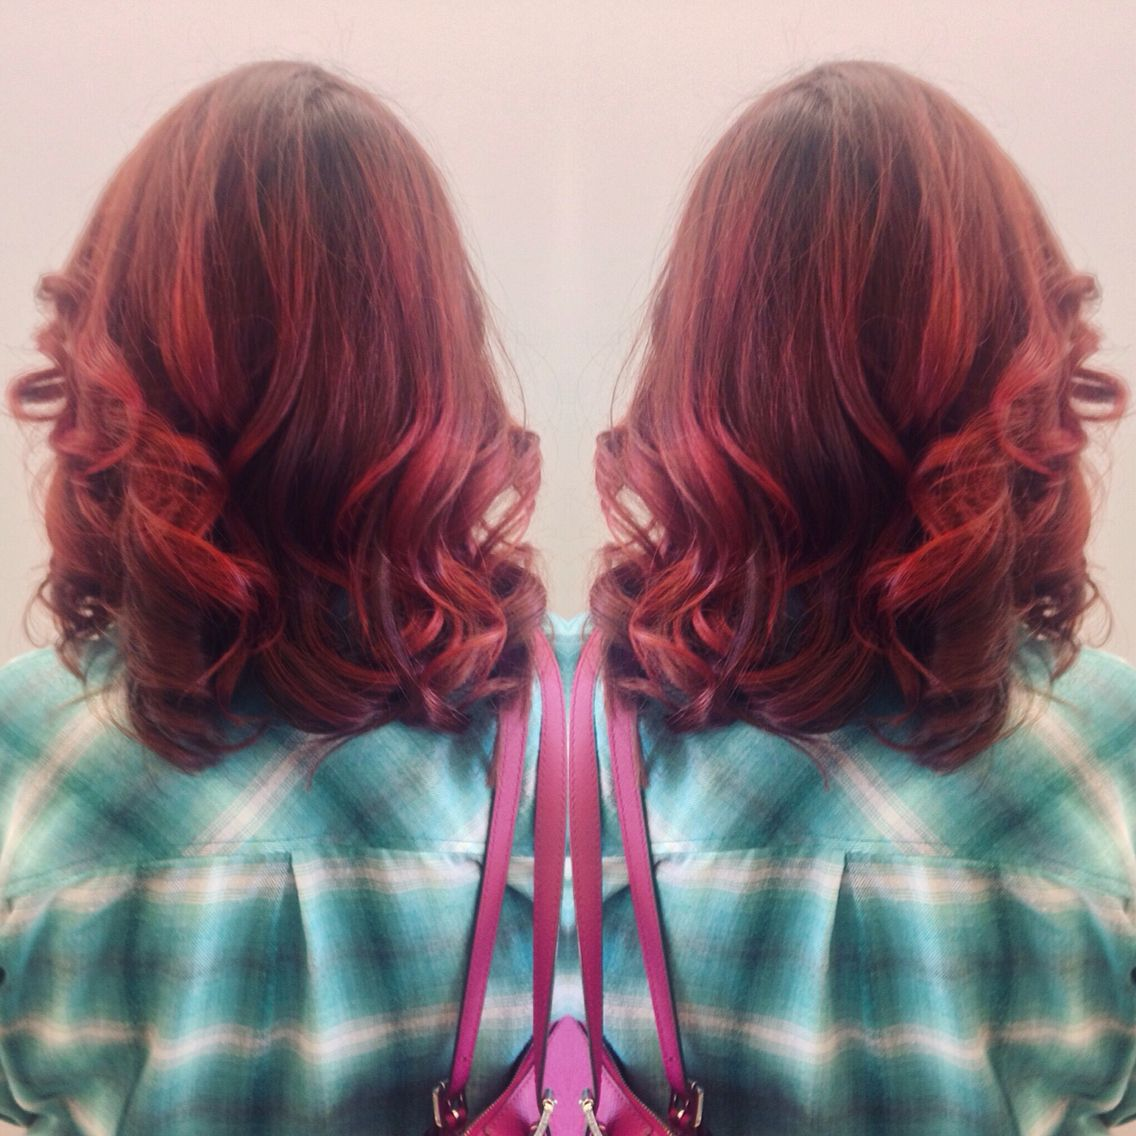 Red velvet cake hair my style pinterest hair velvet and red